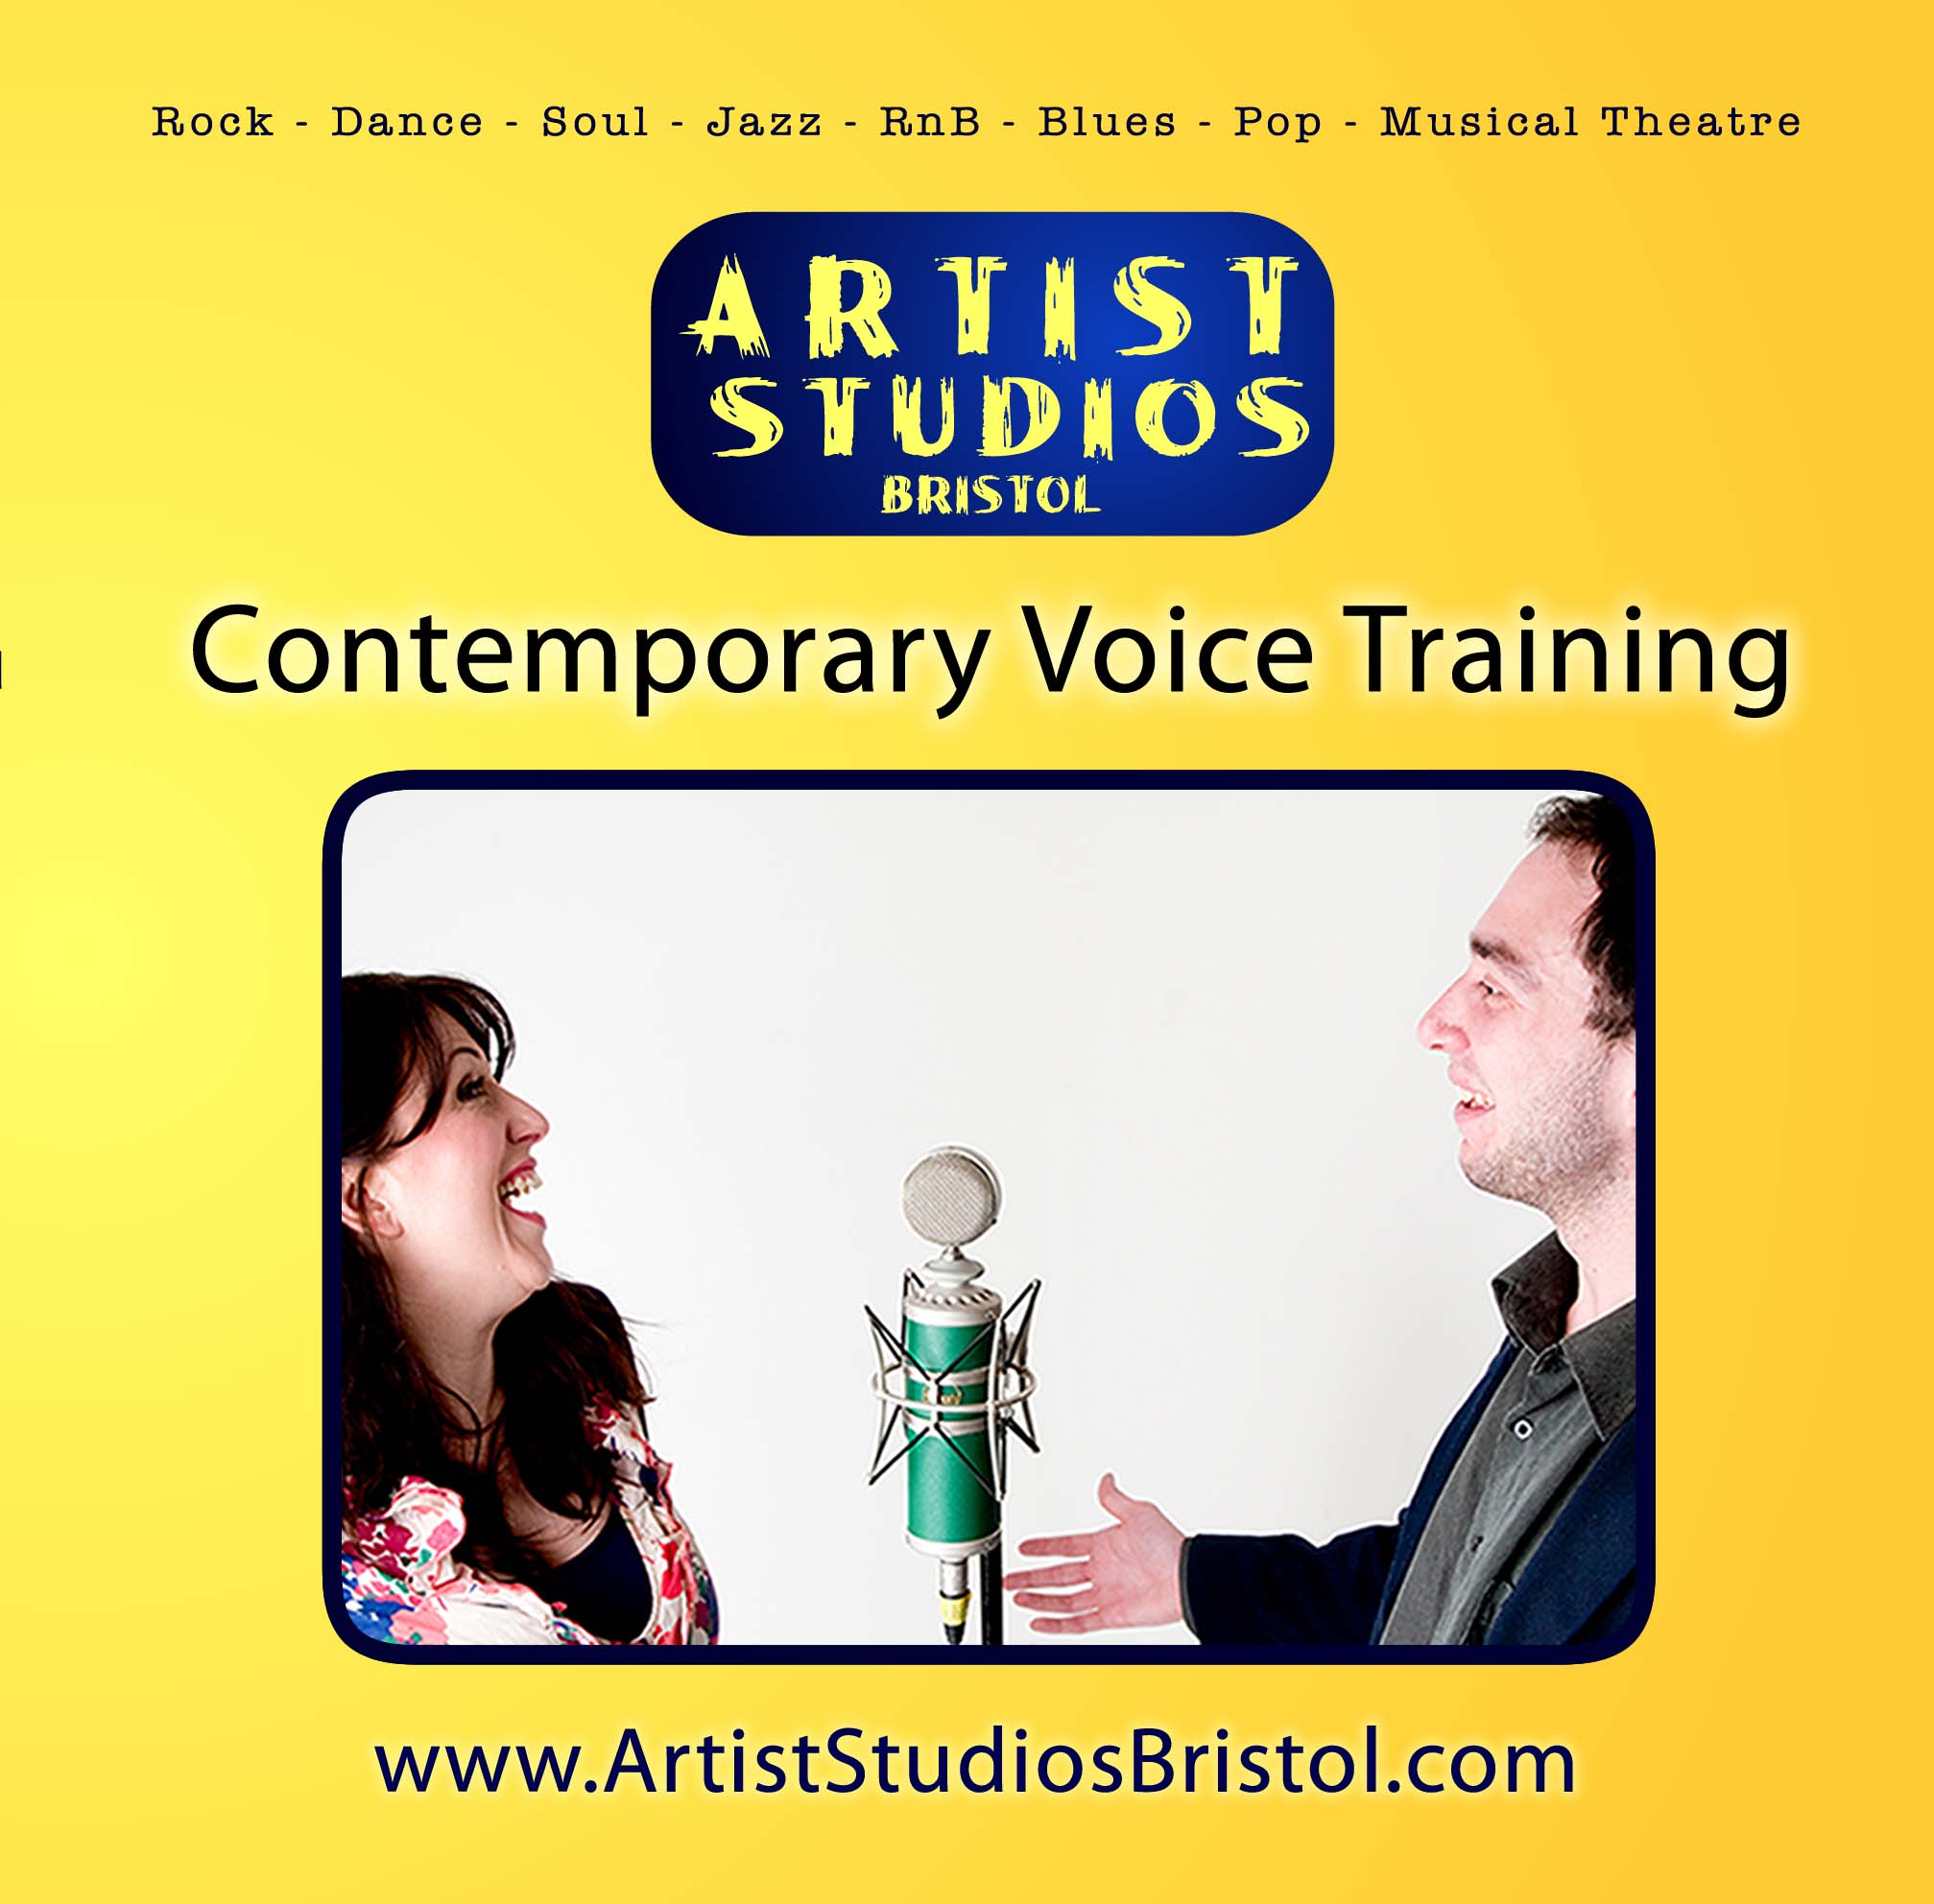 Train your voice with our Contemporary Voice Technique Training guide